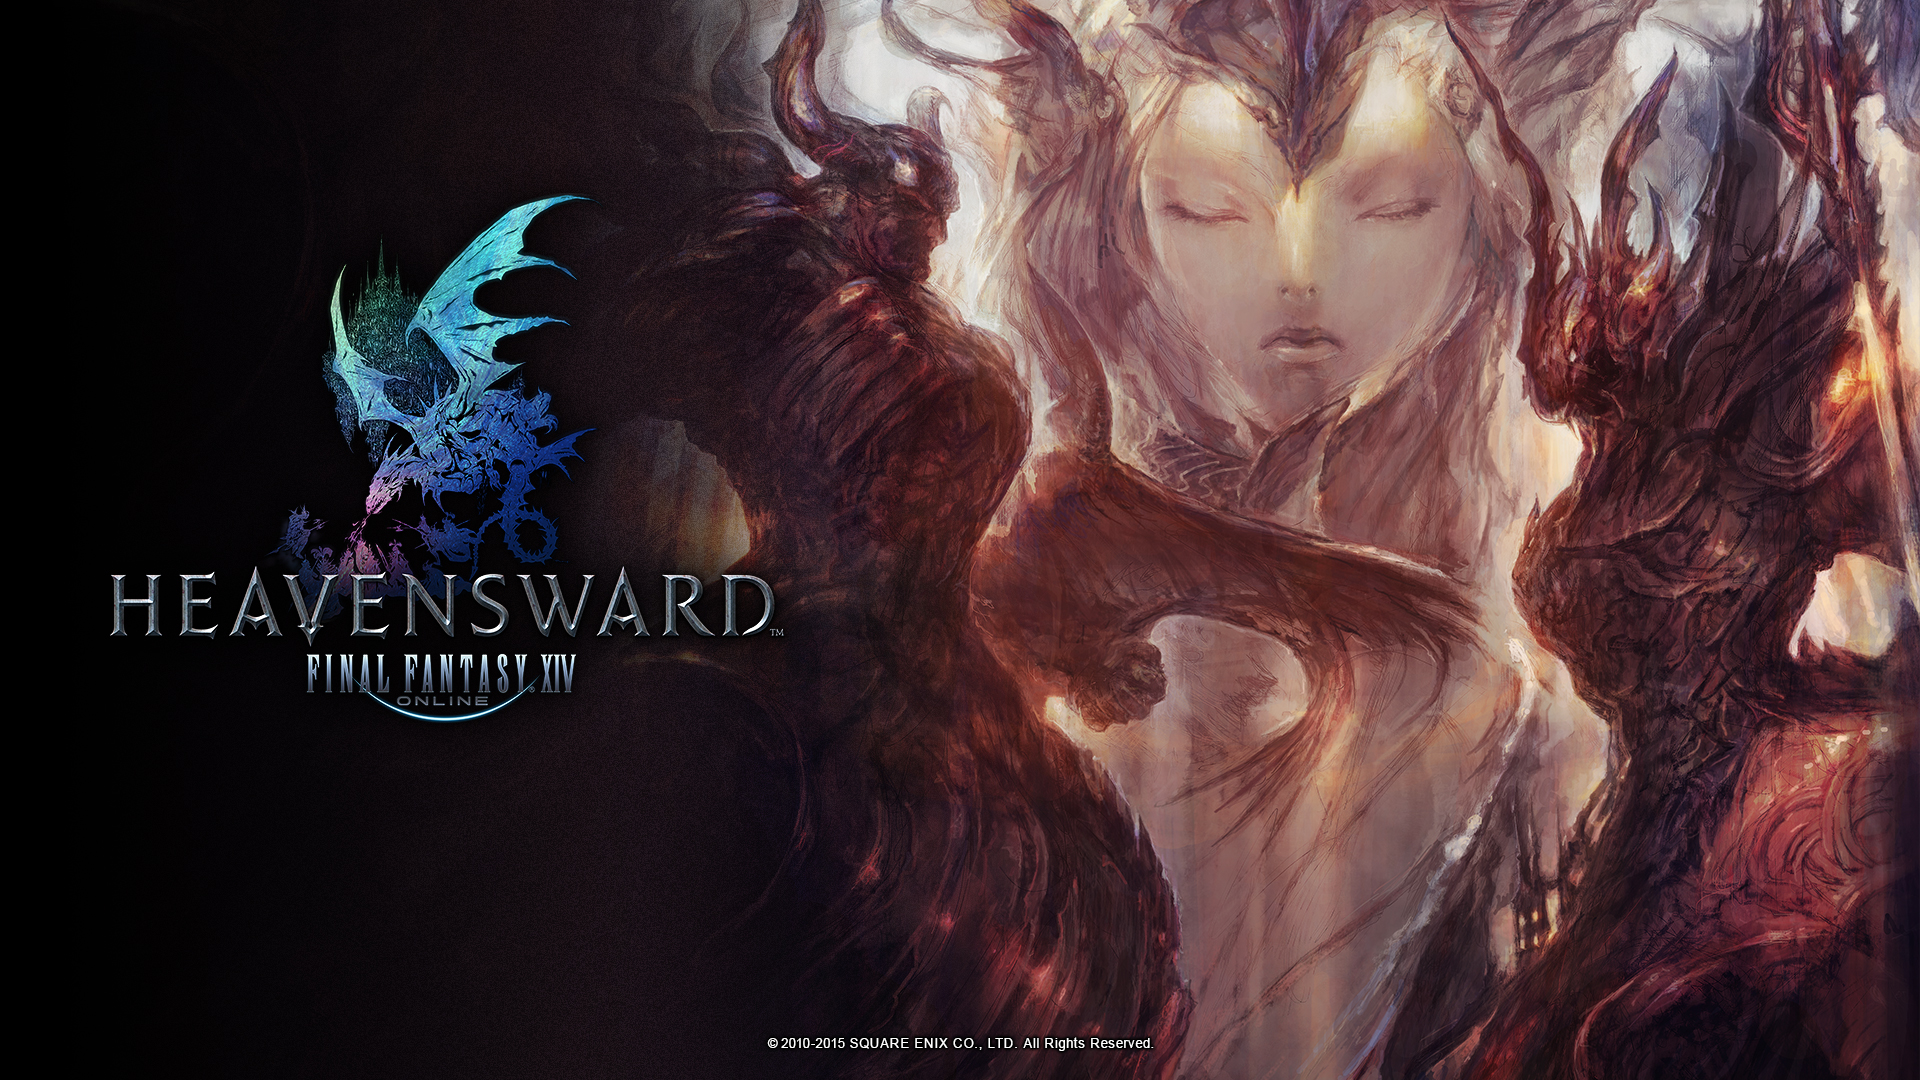 Final Fantasy Xiv Wallpaper 069 Wallpapers Ethereal Games